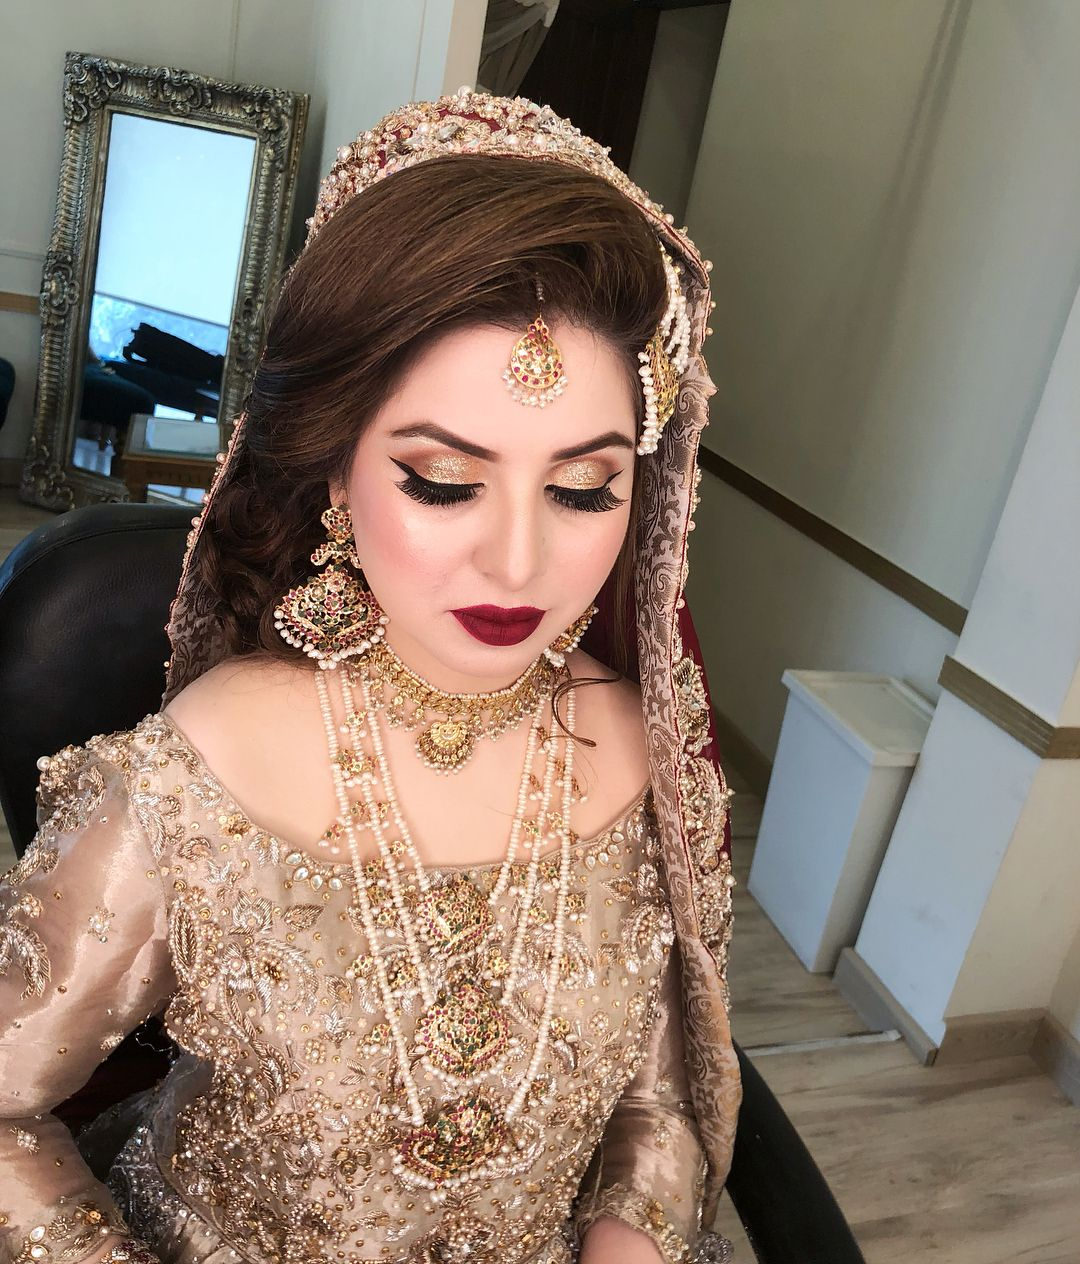 Hairstyles Pakistani Waleema: Pin By Aisha Khan On Make Up Looks In 2019